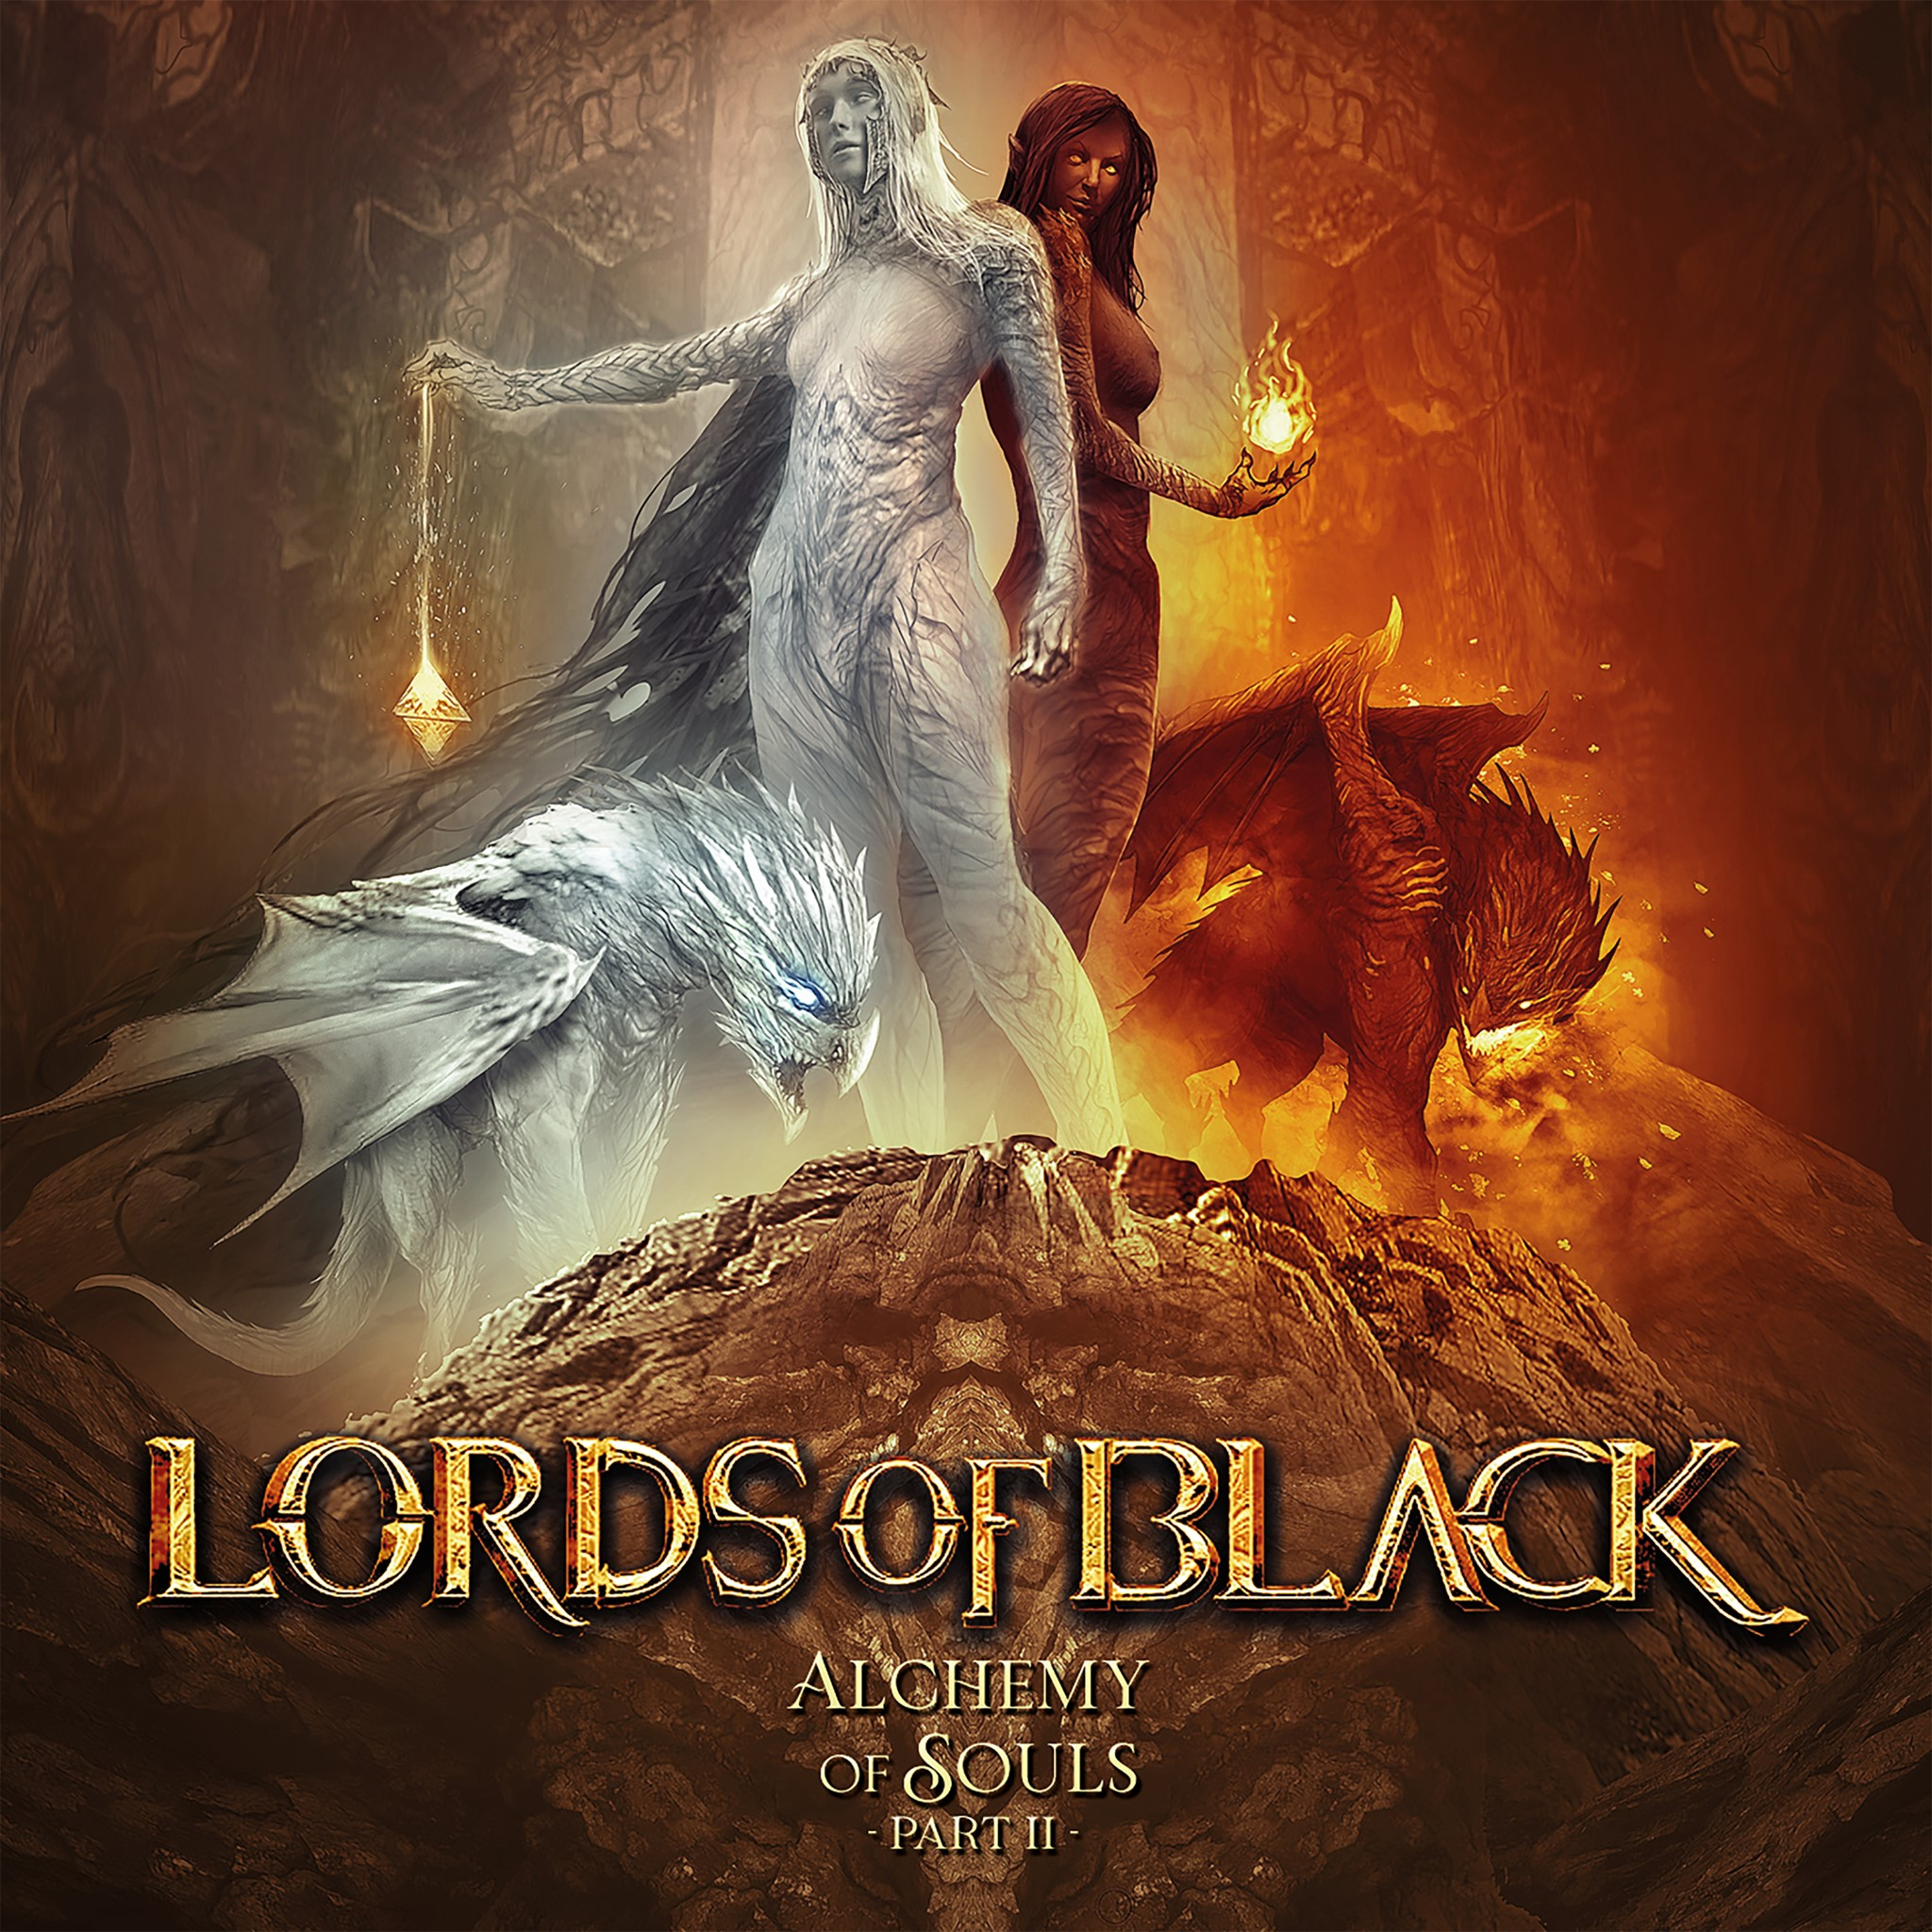 lords of black alchemy of souls part II